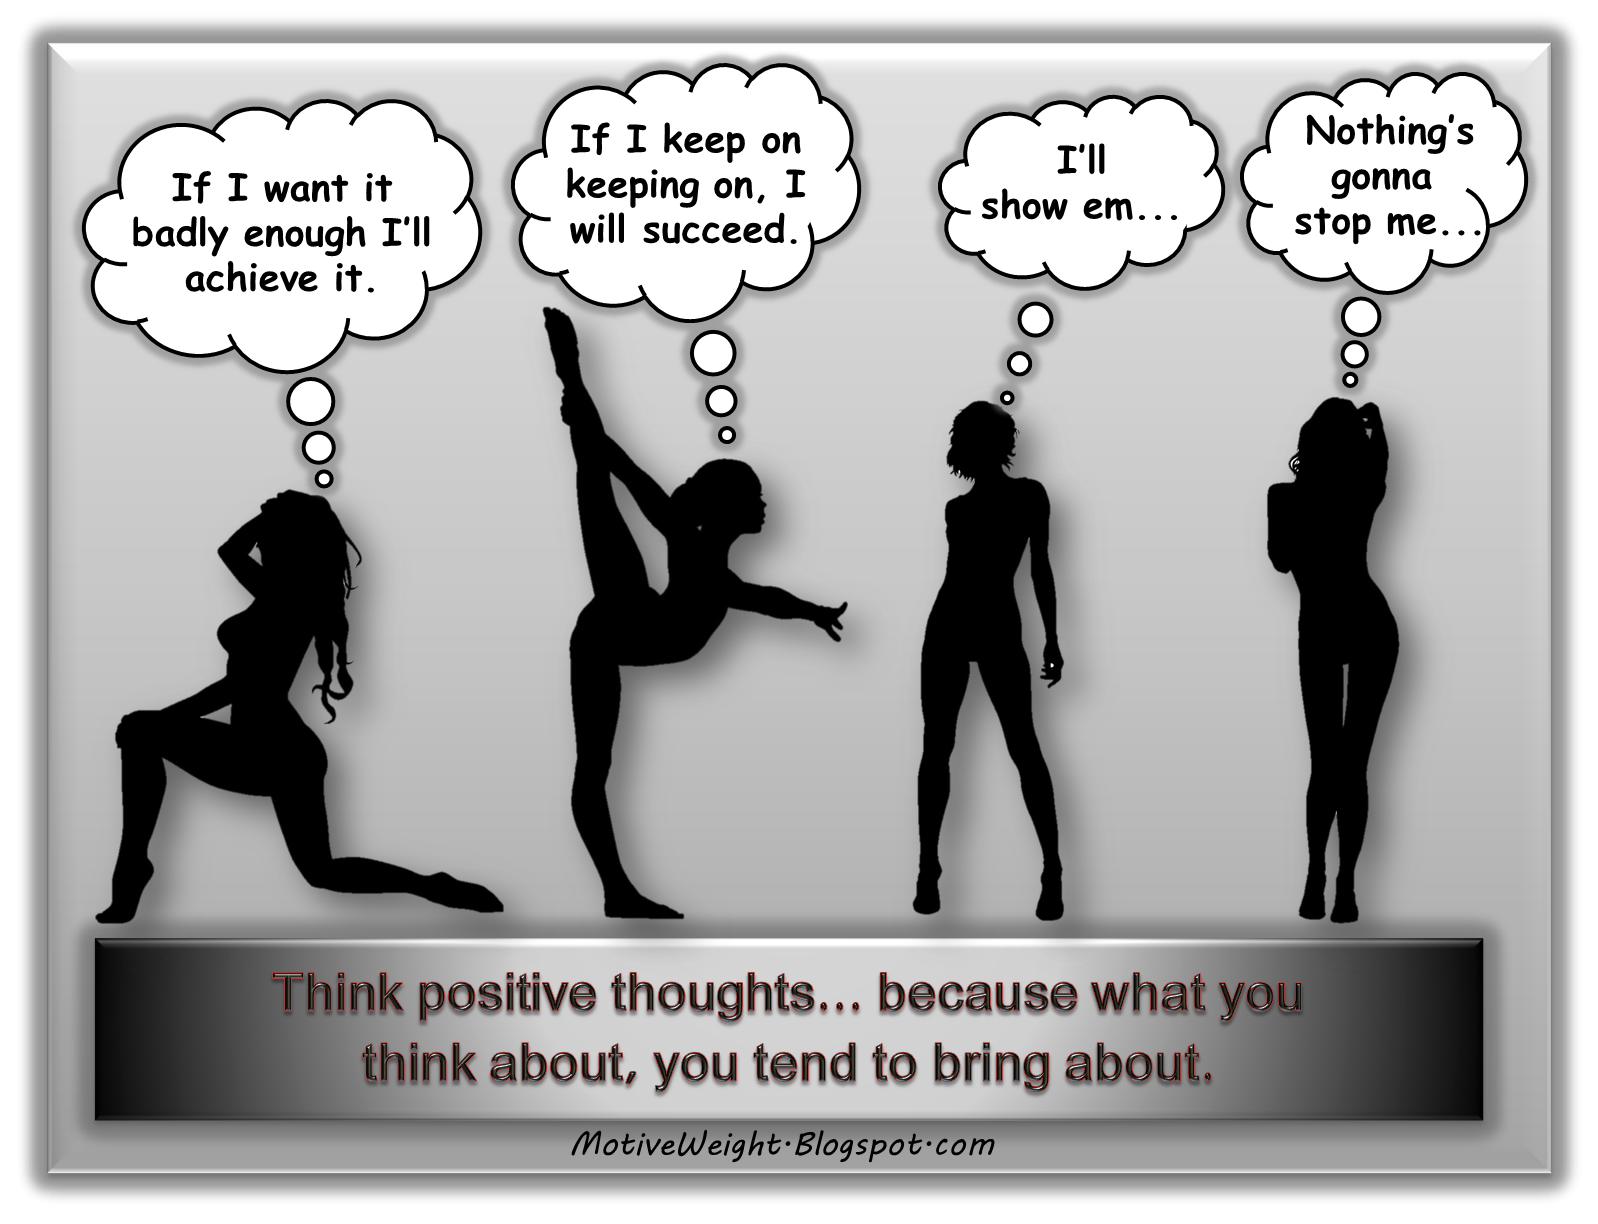 MotiveWeight: Think Positive Thoughts